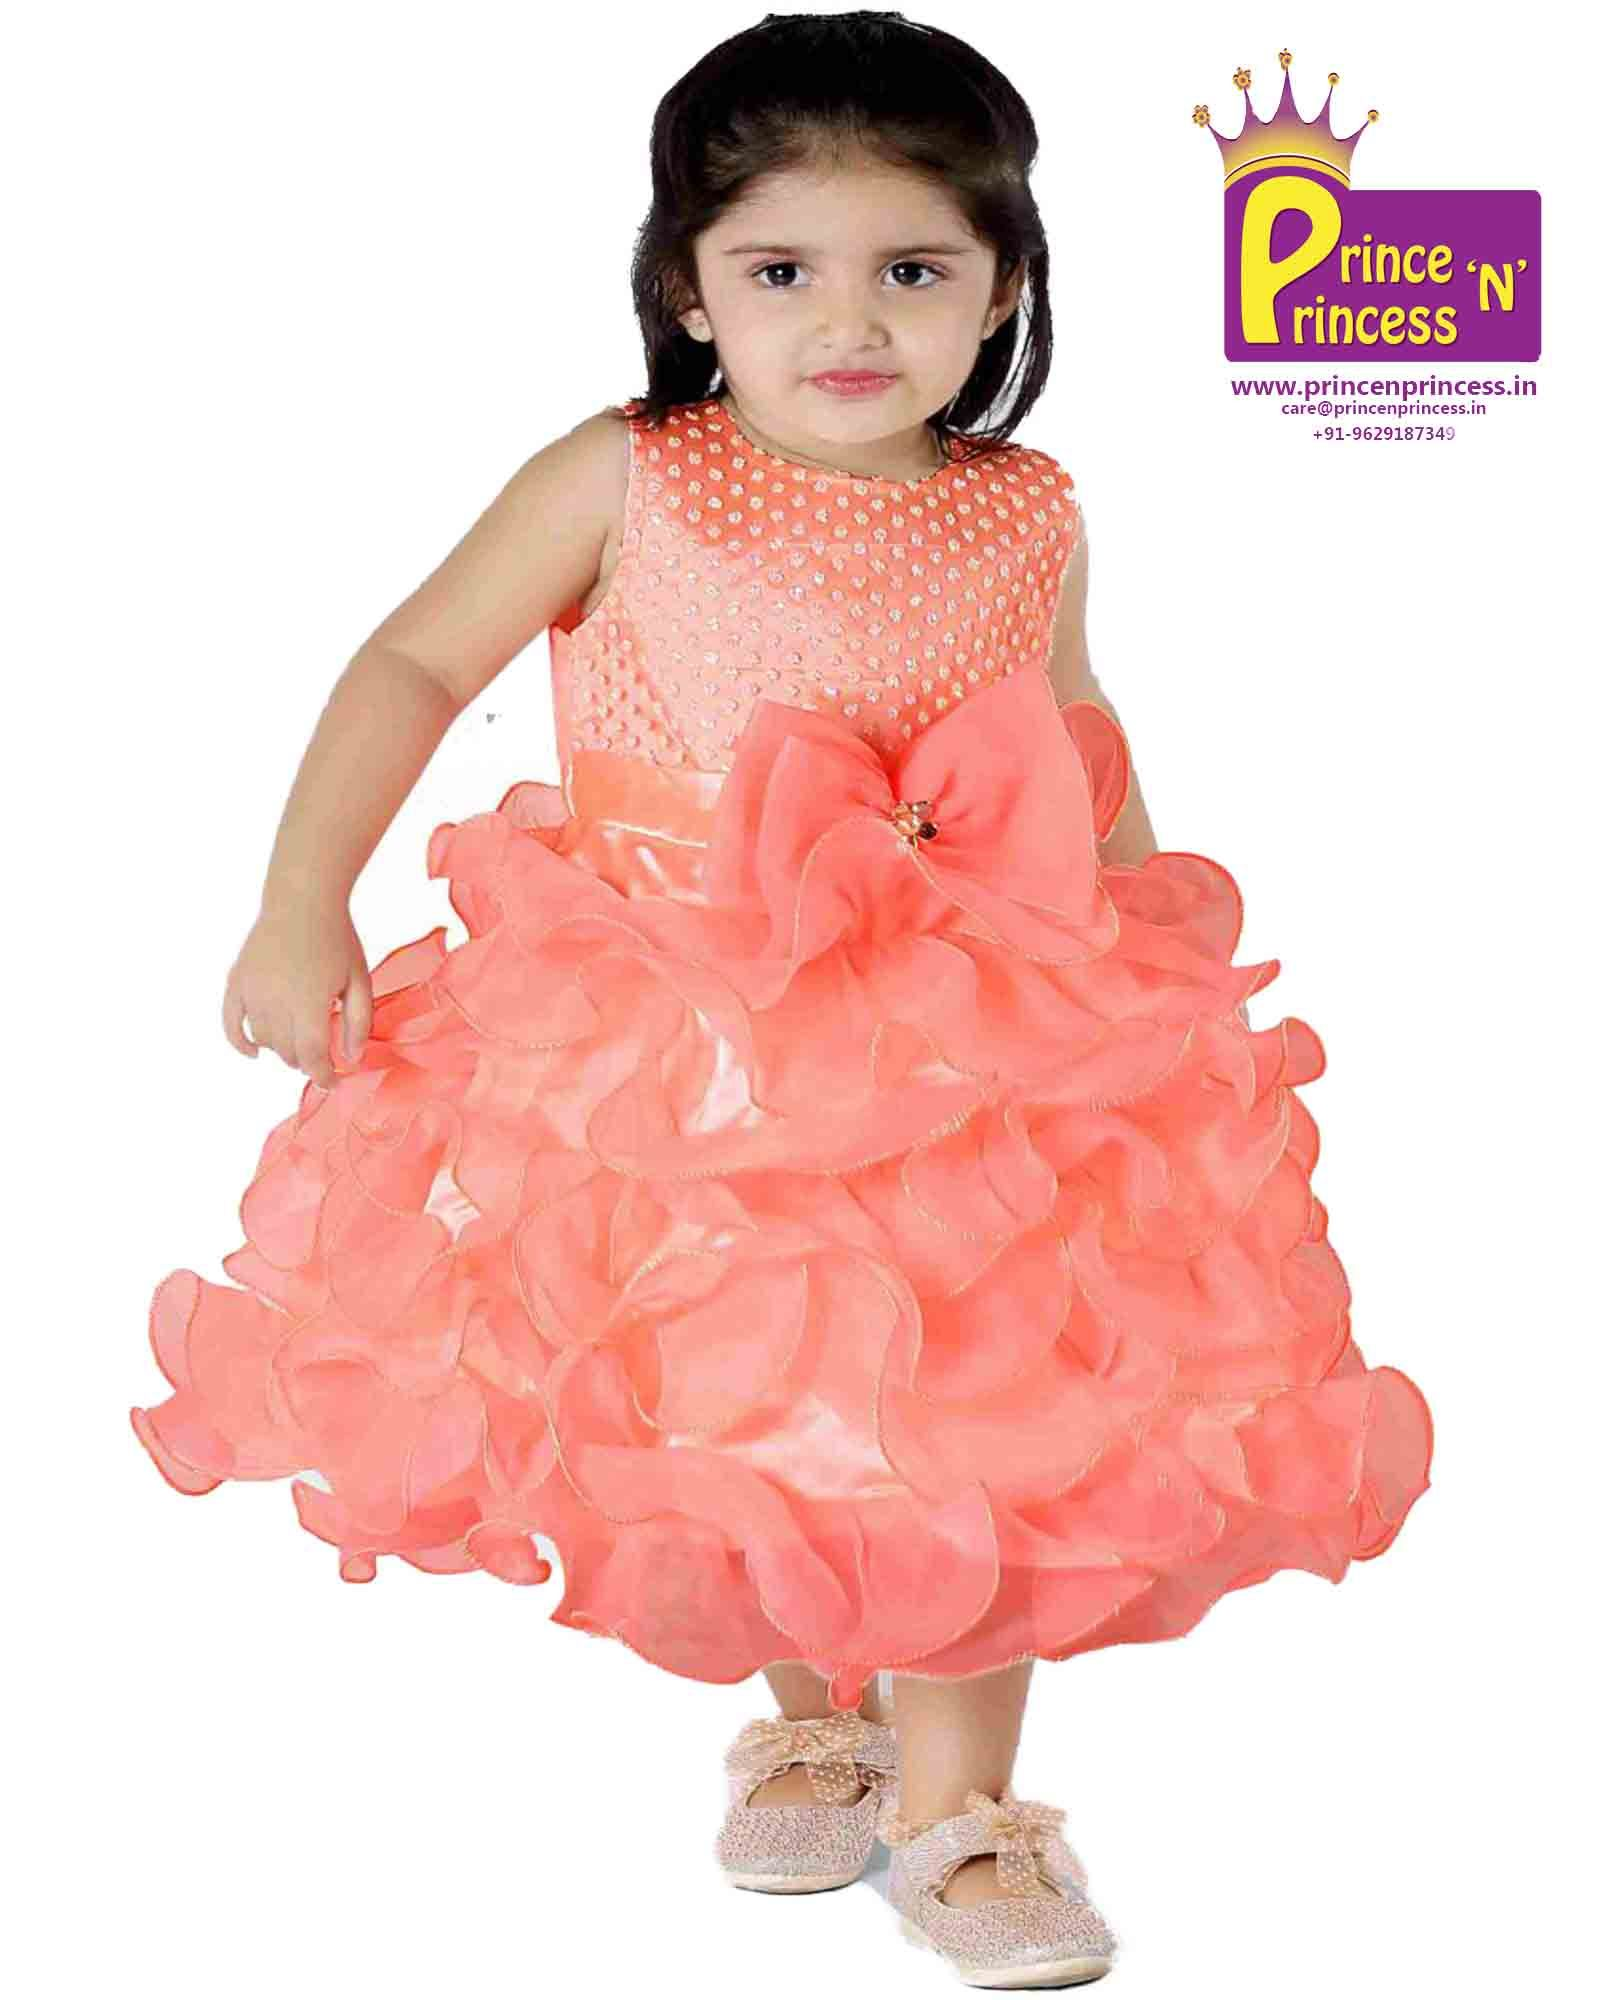 Kids grand party frock new born first birthday Party